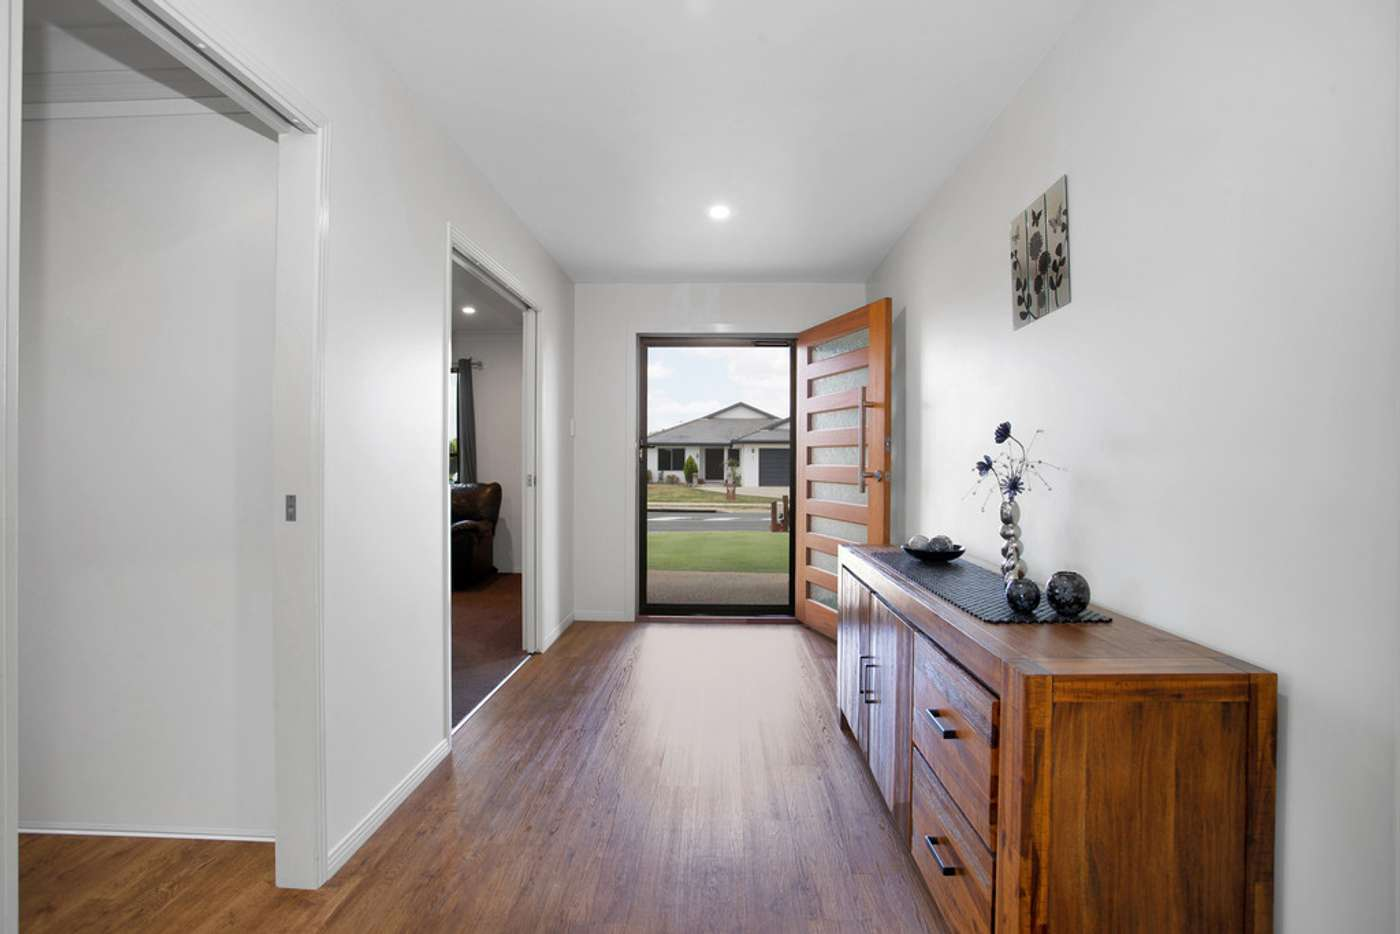 Sixth view of Homely house listing, 2 Roma Court, Beaconsfield QLD 4740